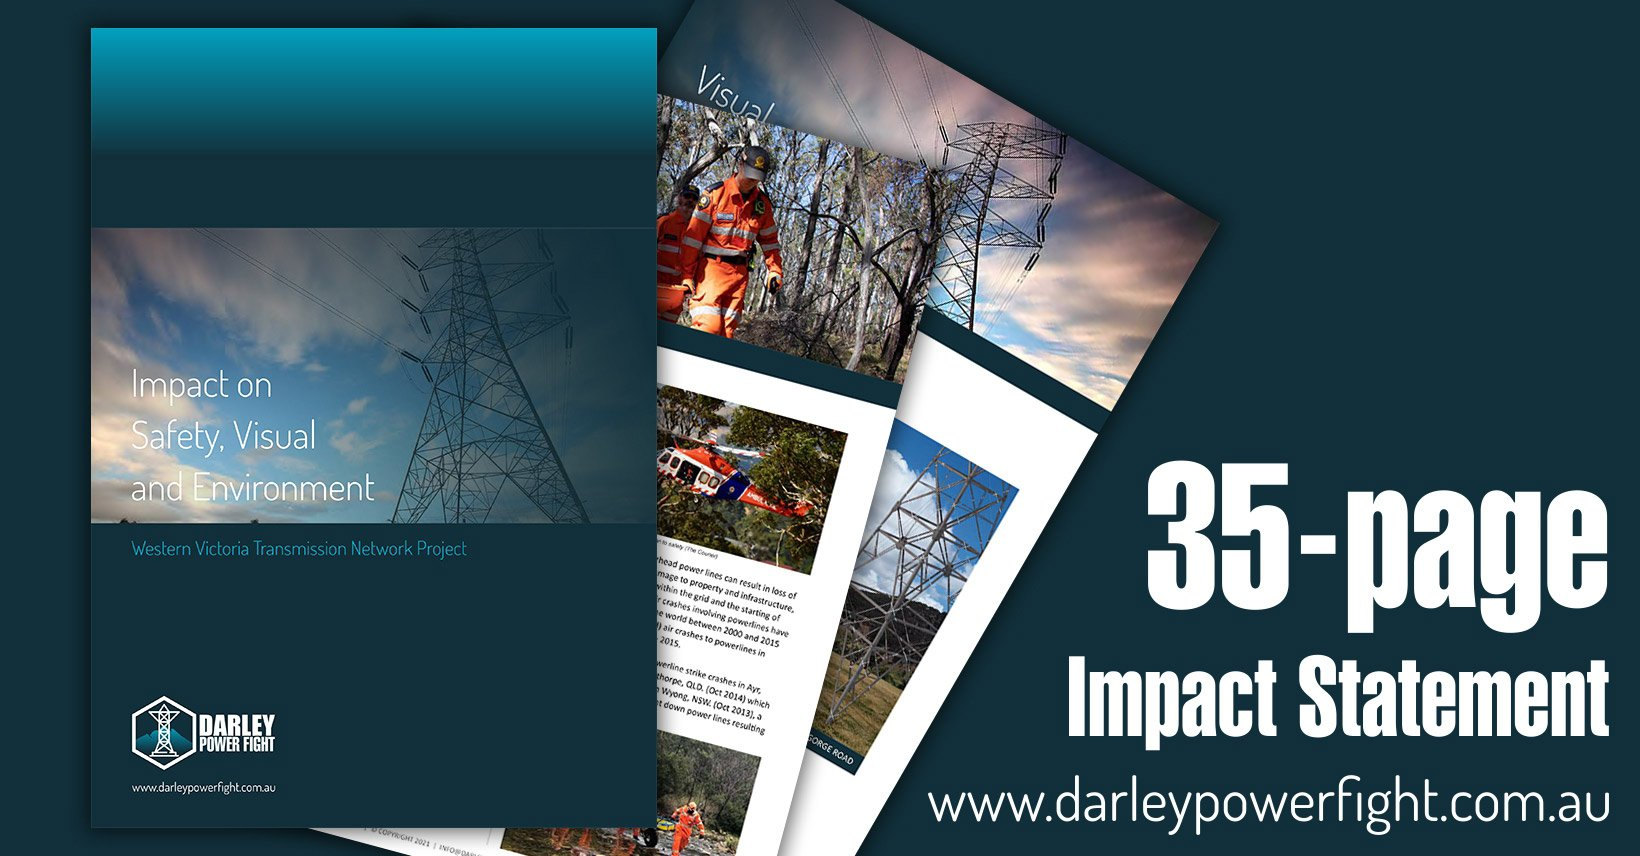 Darley Power Fight 35-page Impact Statement